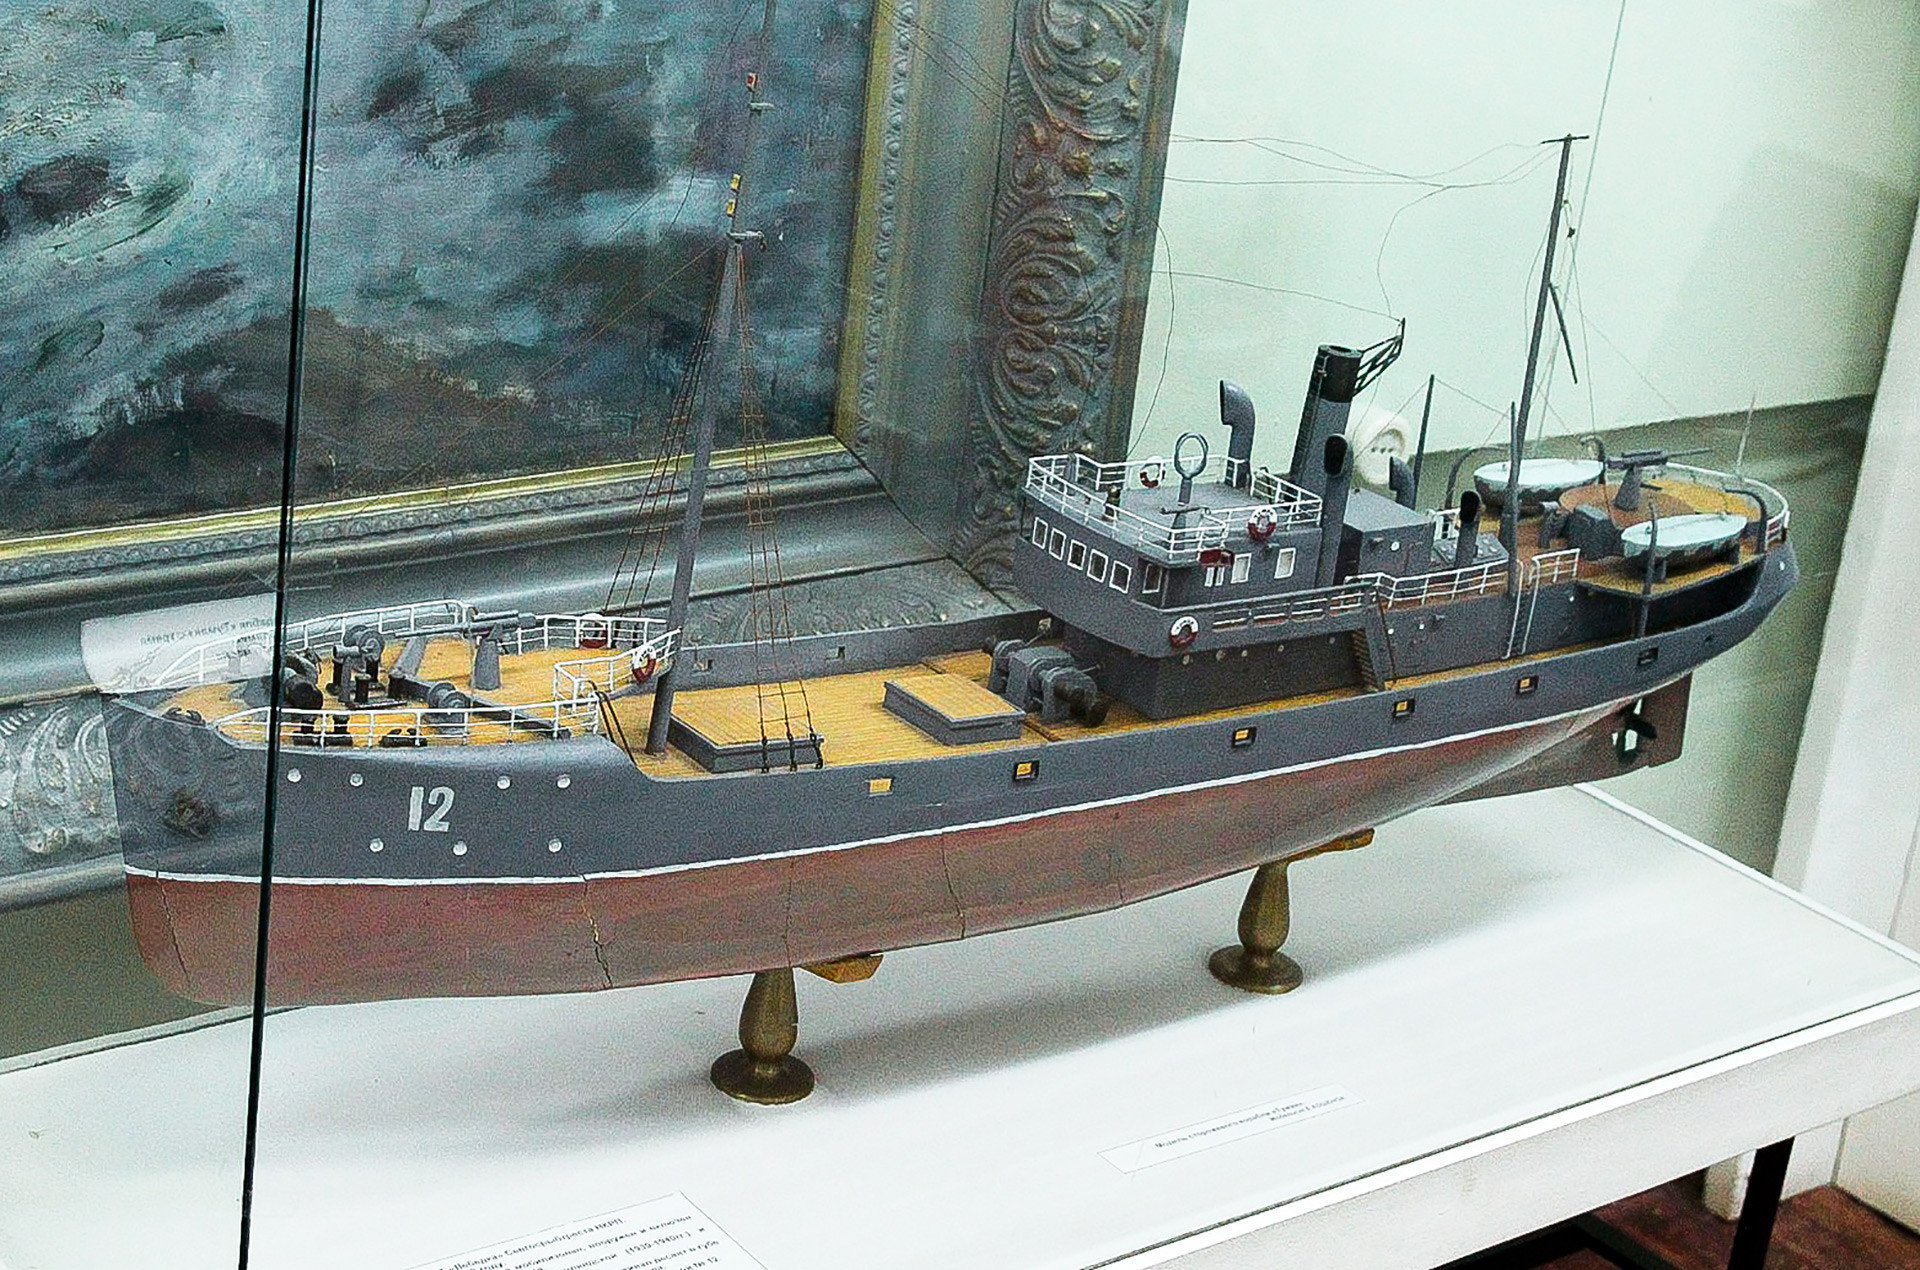 A model of Tuman patrol boat.